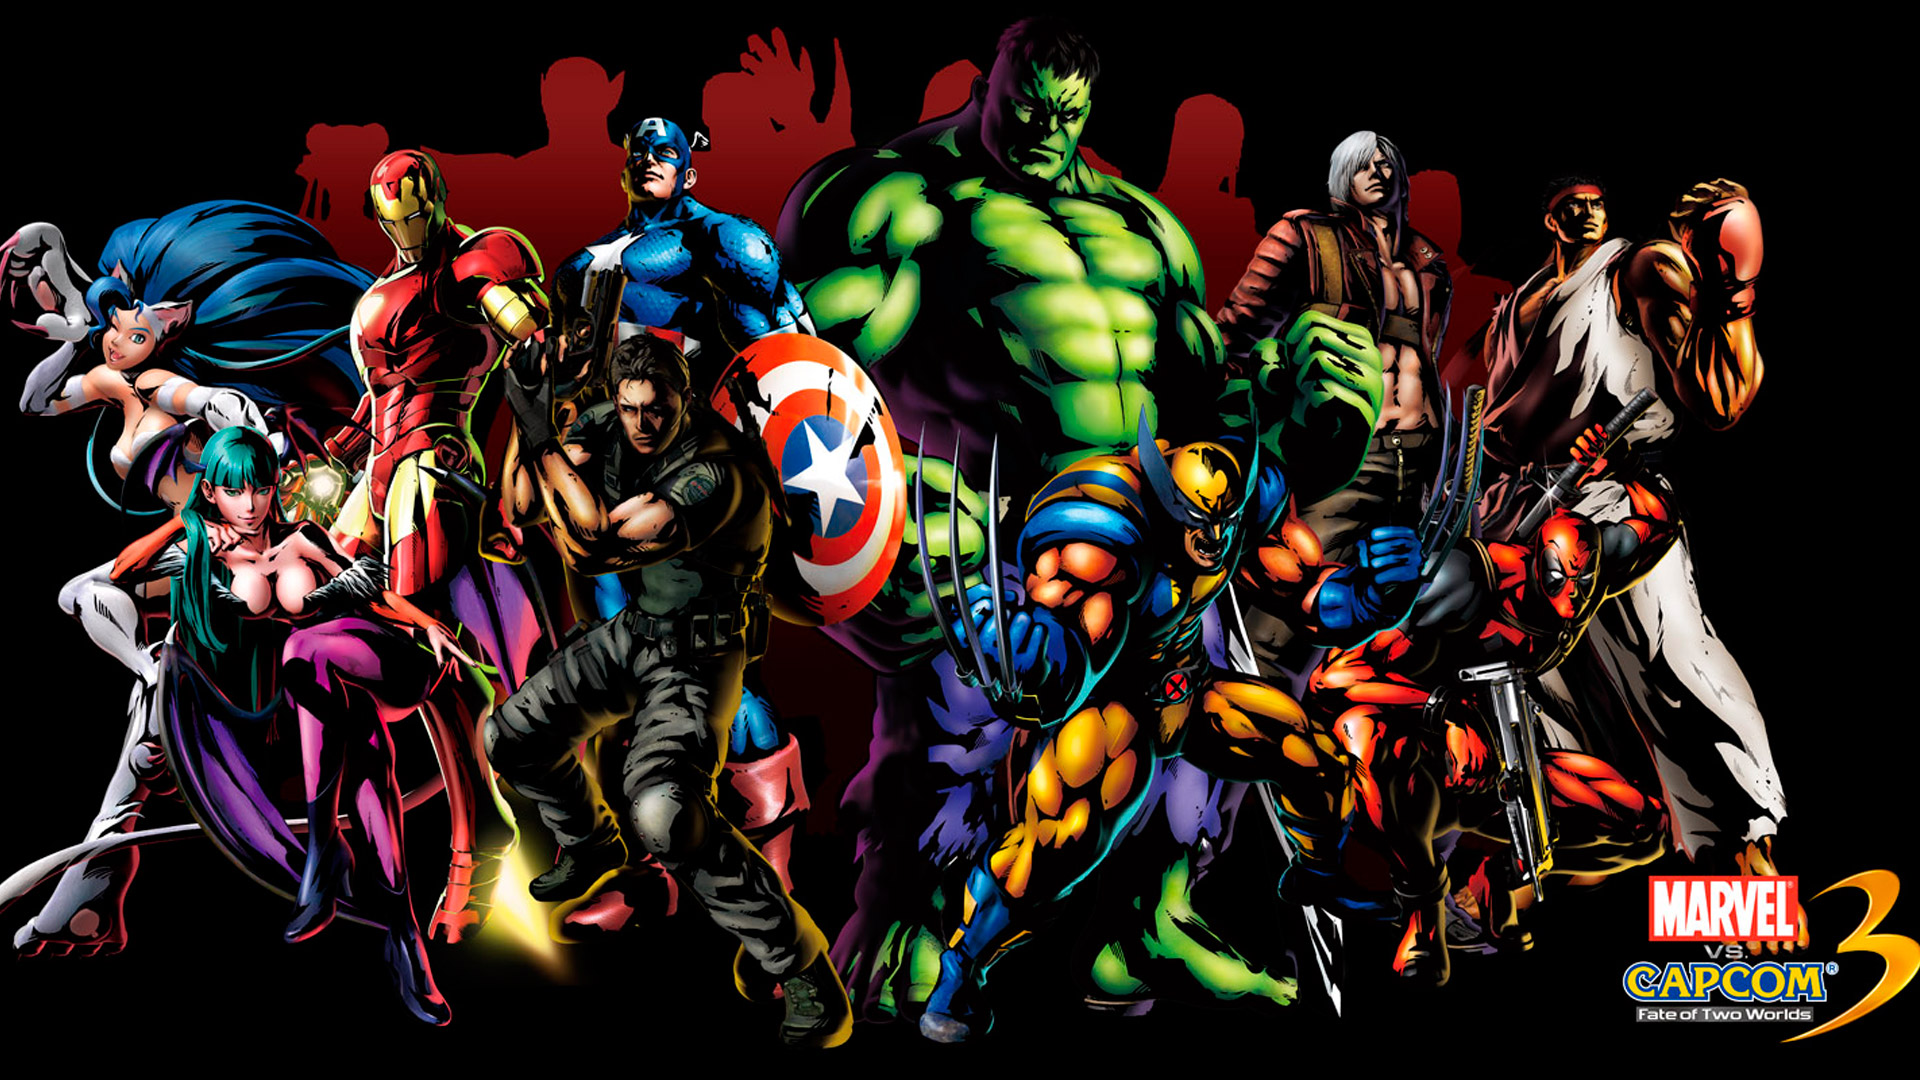 Marvel Heroes Wallpaper Background PC 1920x1080